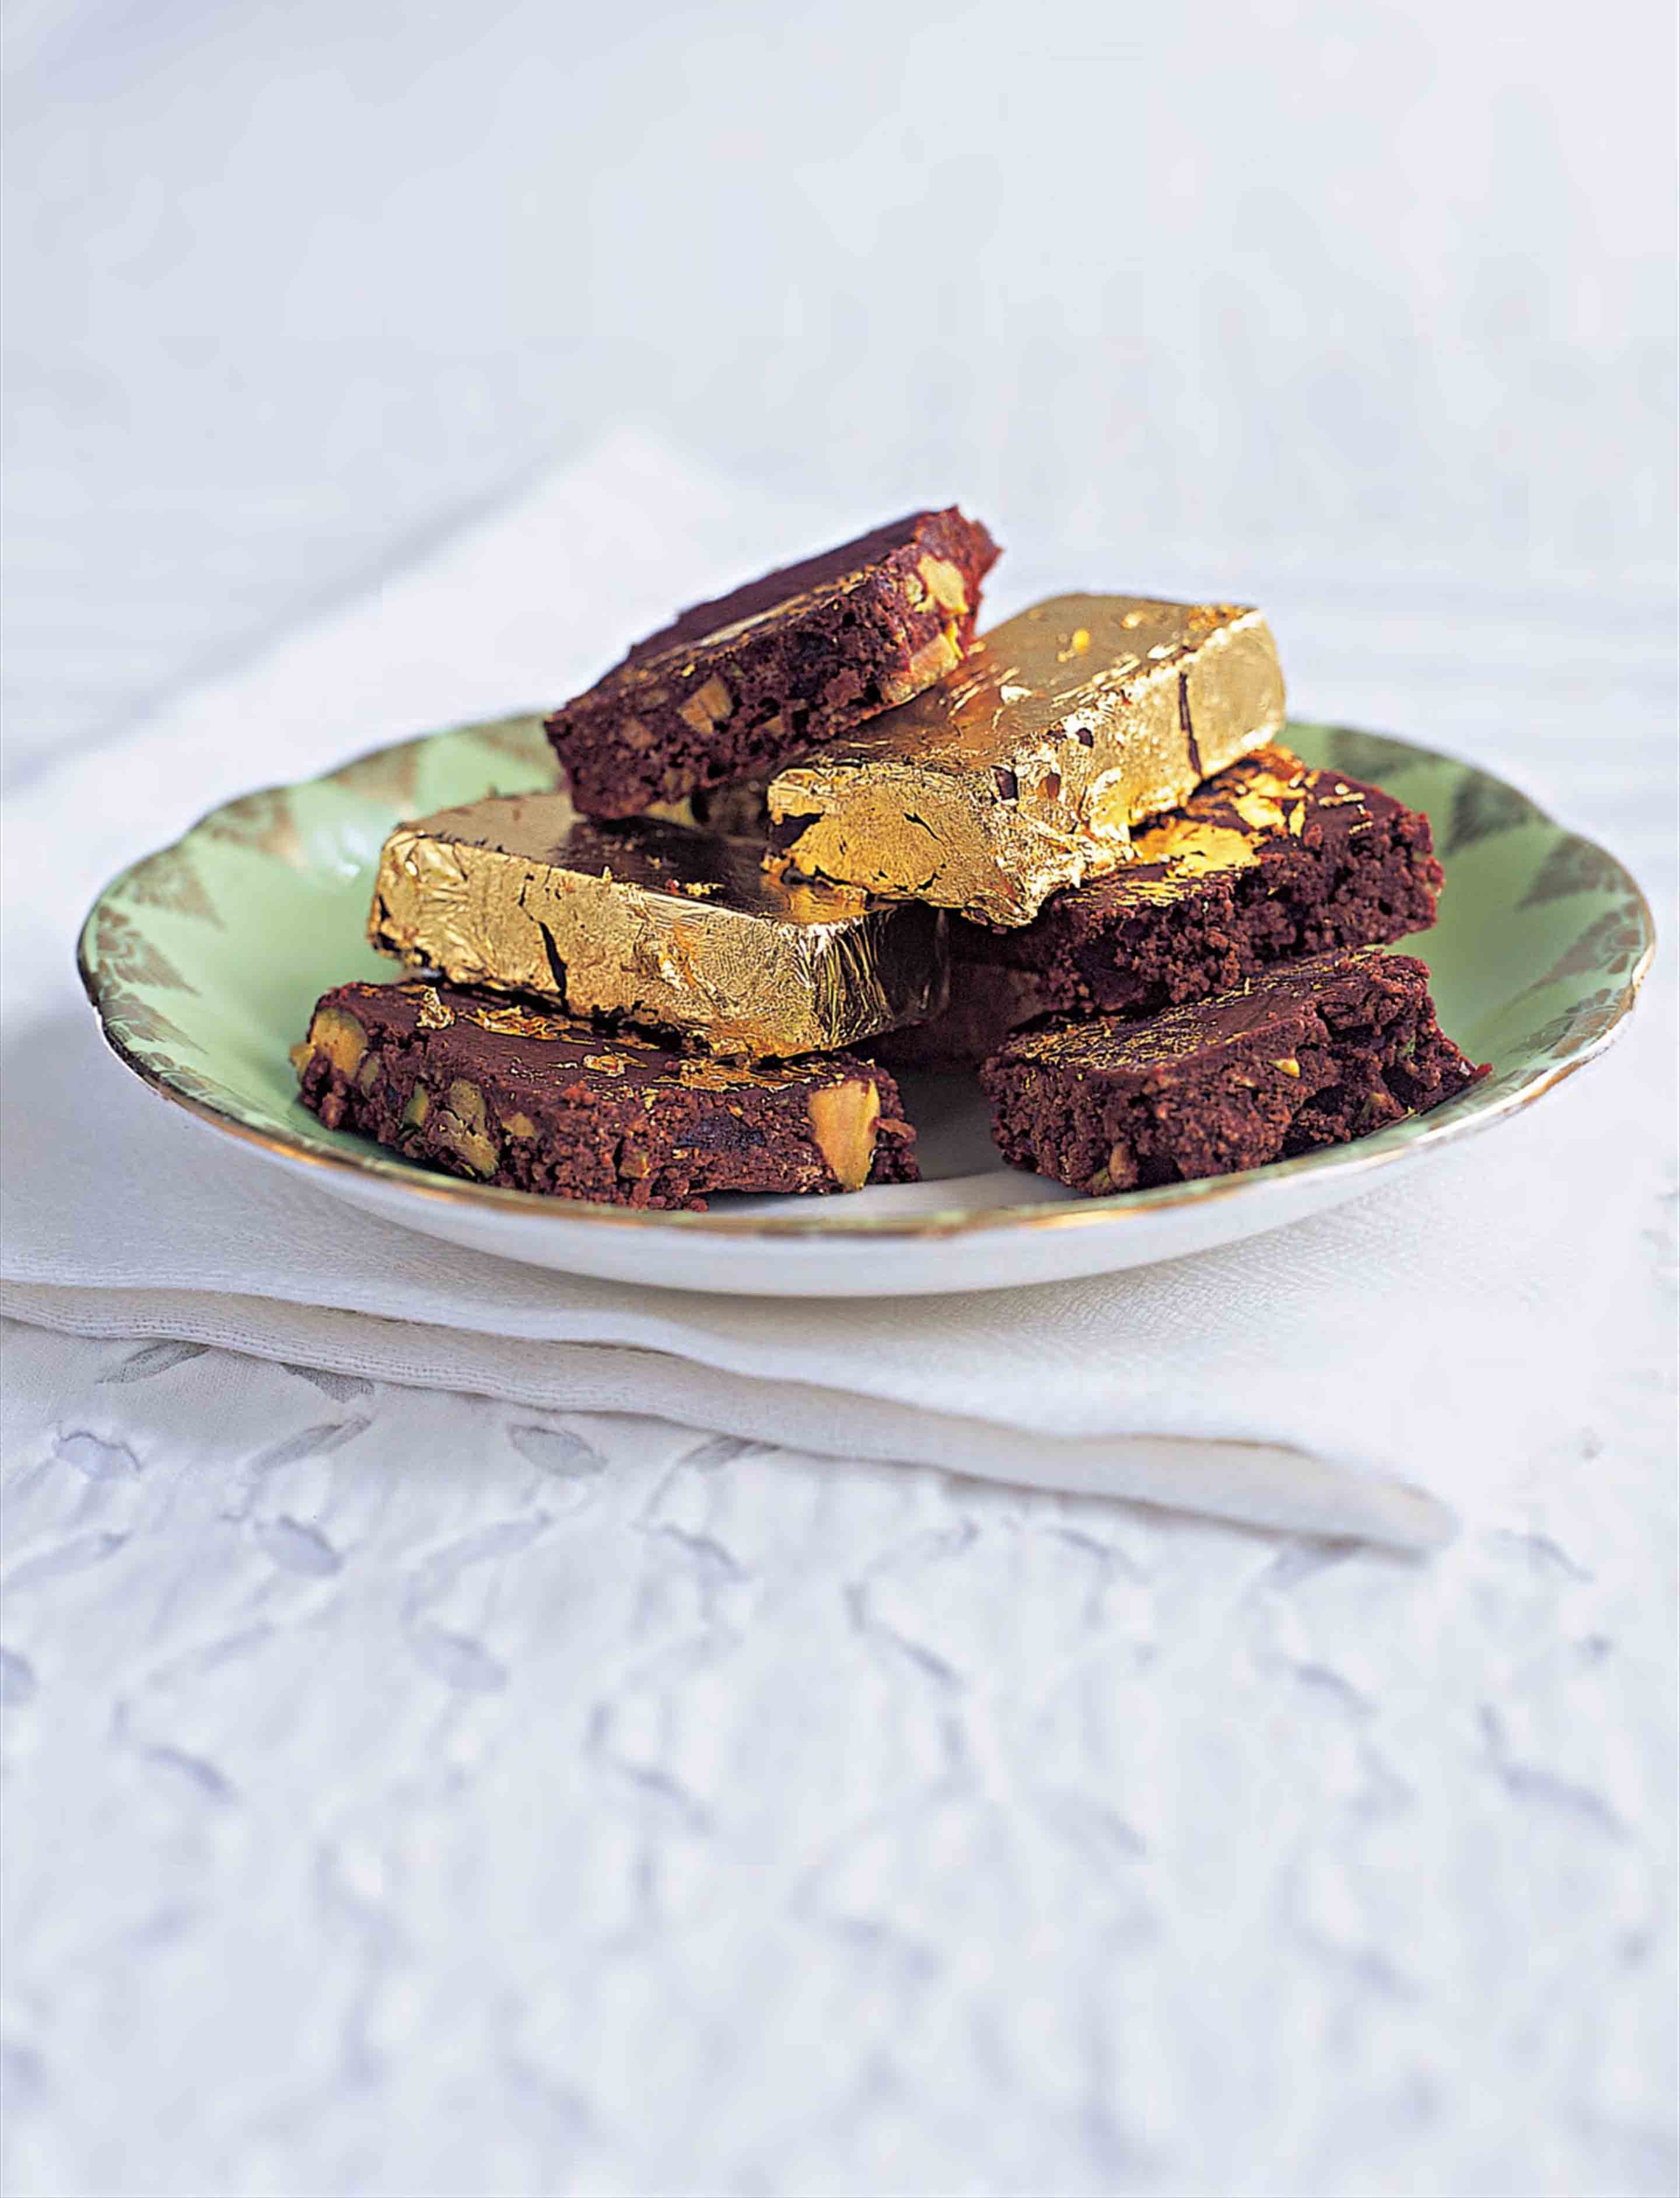 Gilded chocolate tiffin